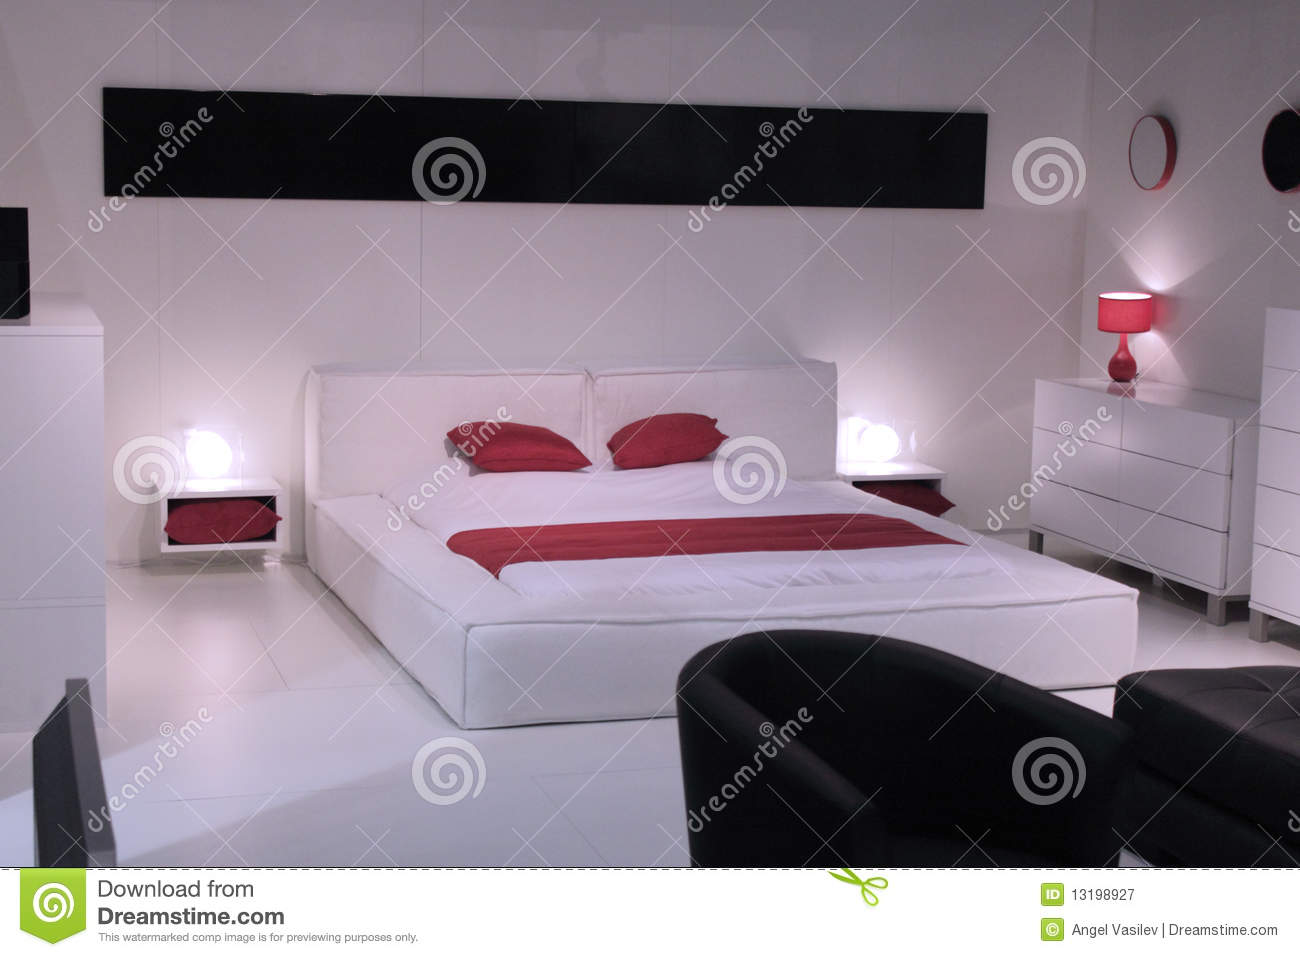 . Modern Bedroom Interior Design  Stock Image   Image of contemporary